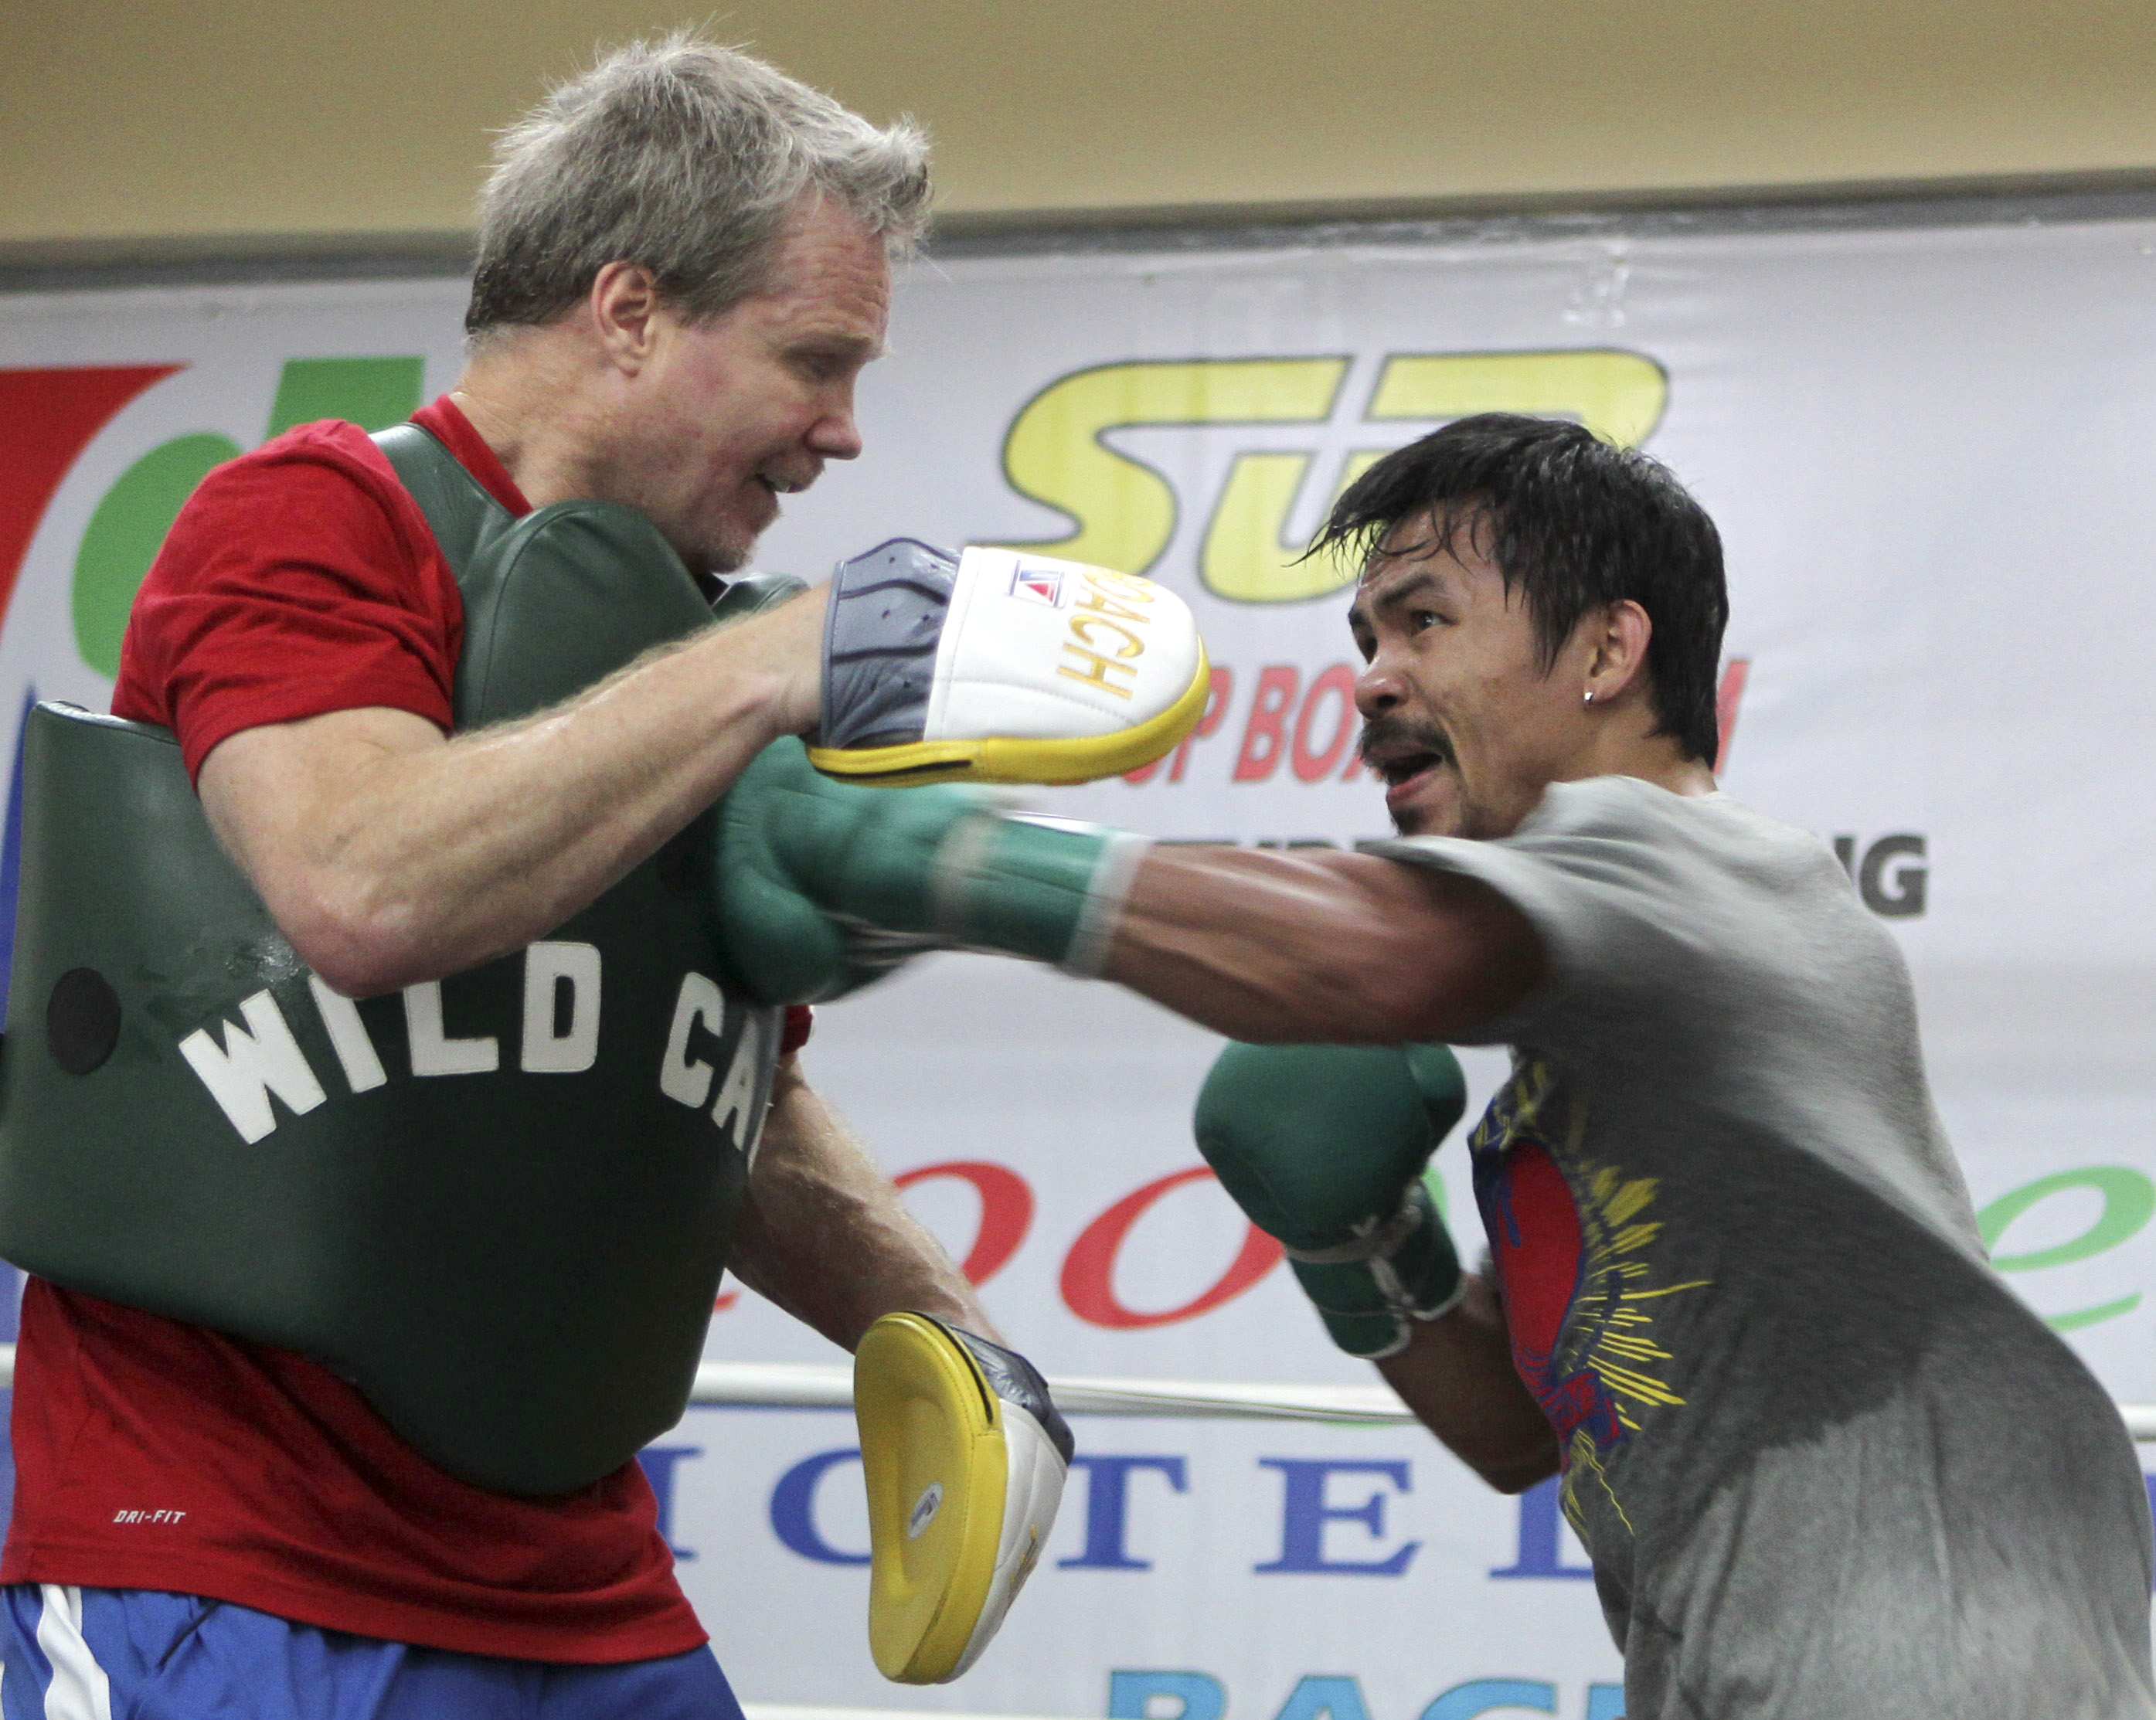 Roach's dream: A master plan for Pacquiao to beat Mayweather